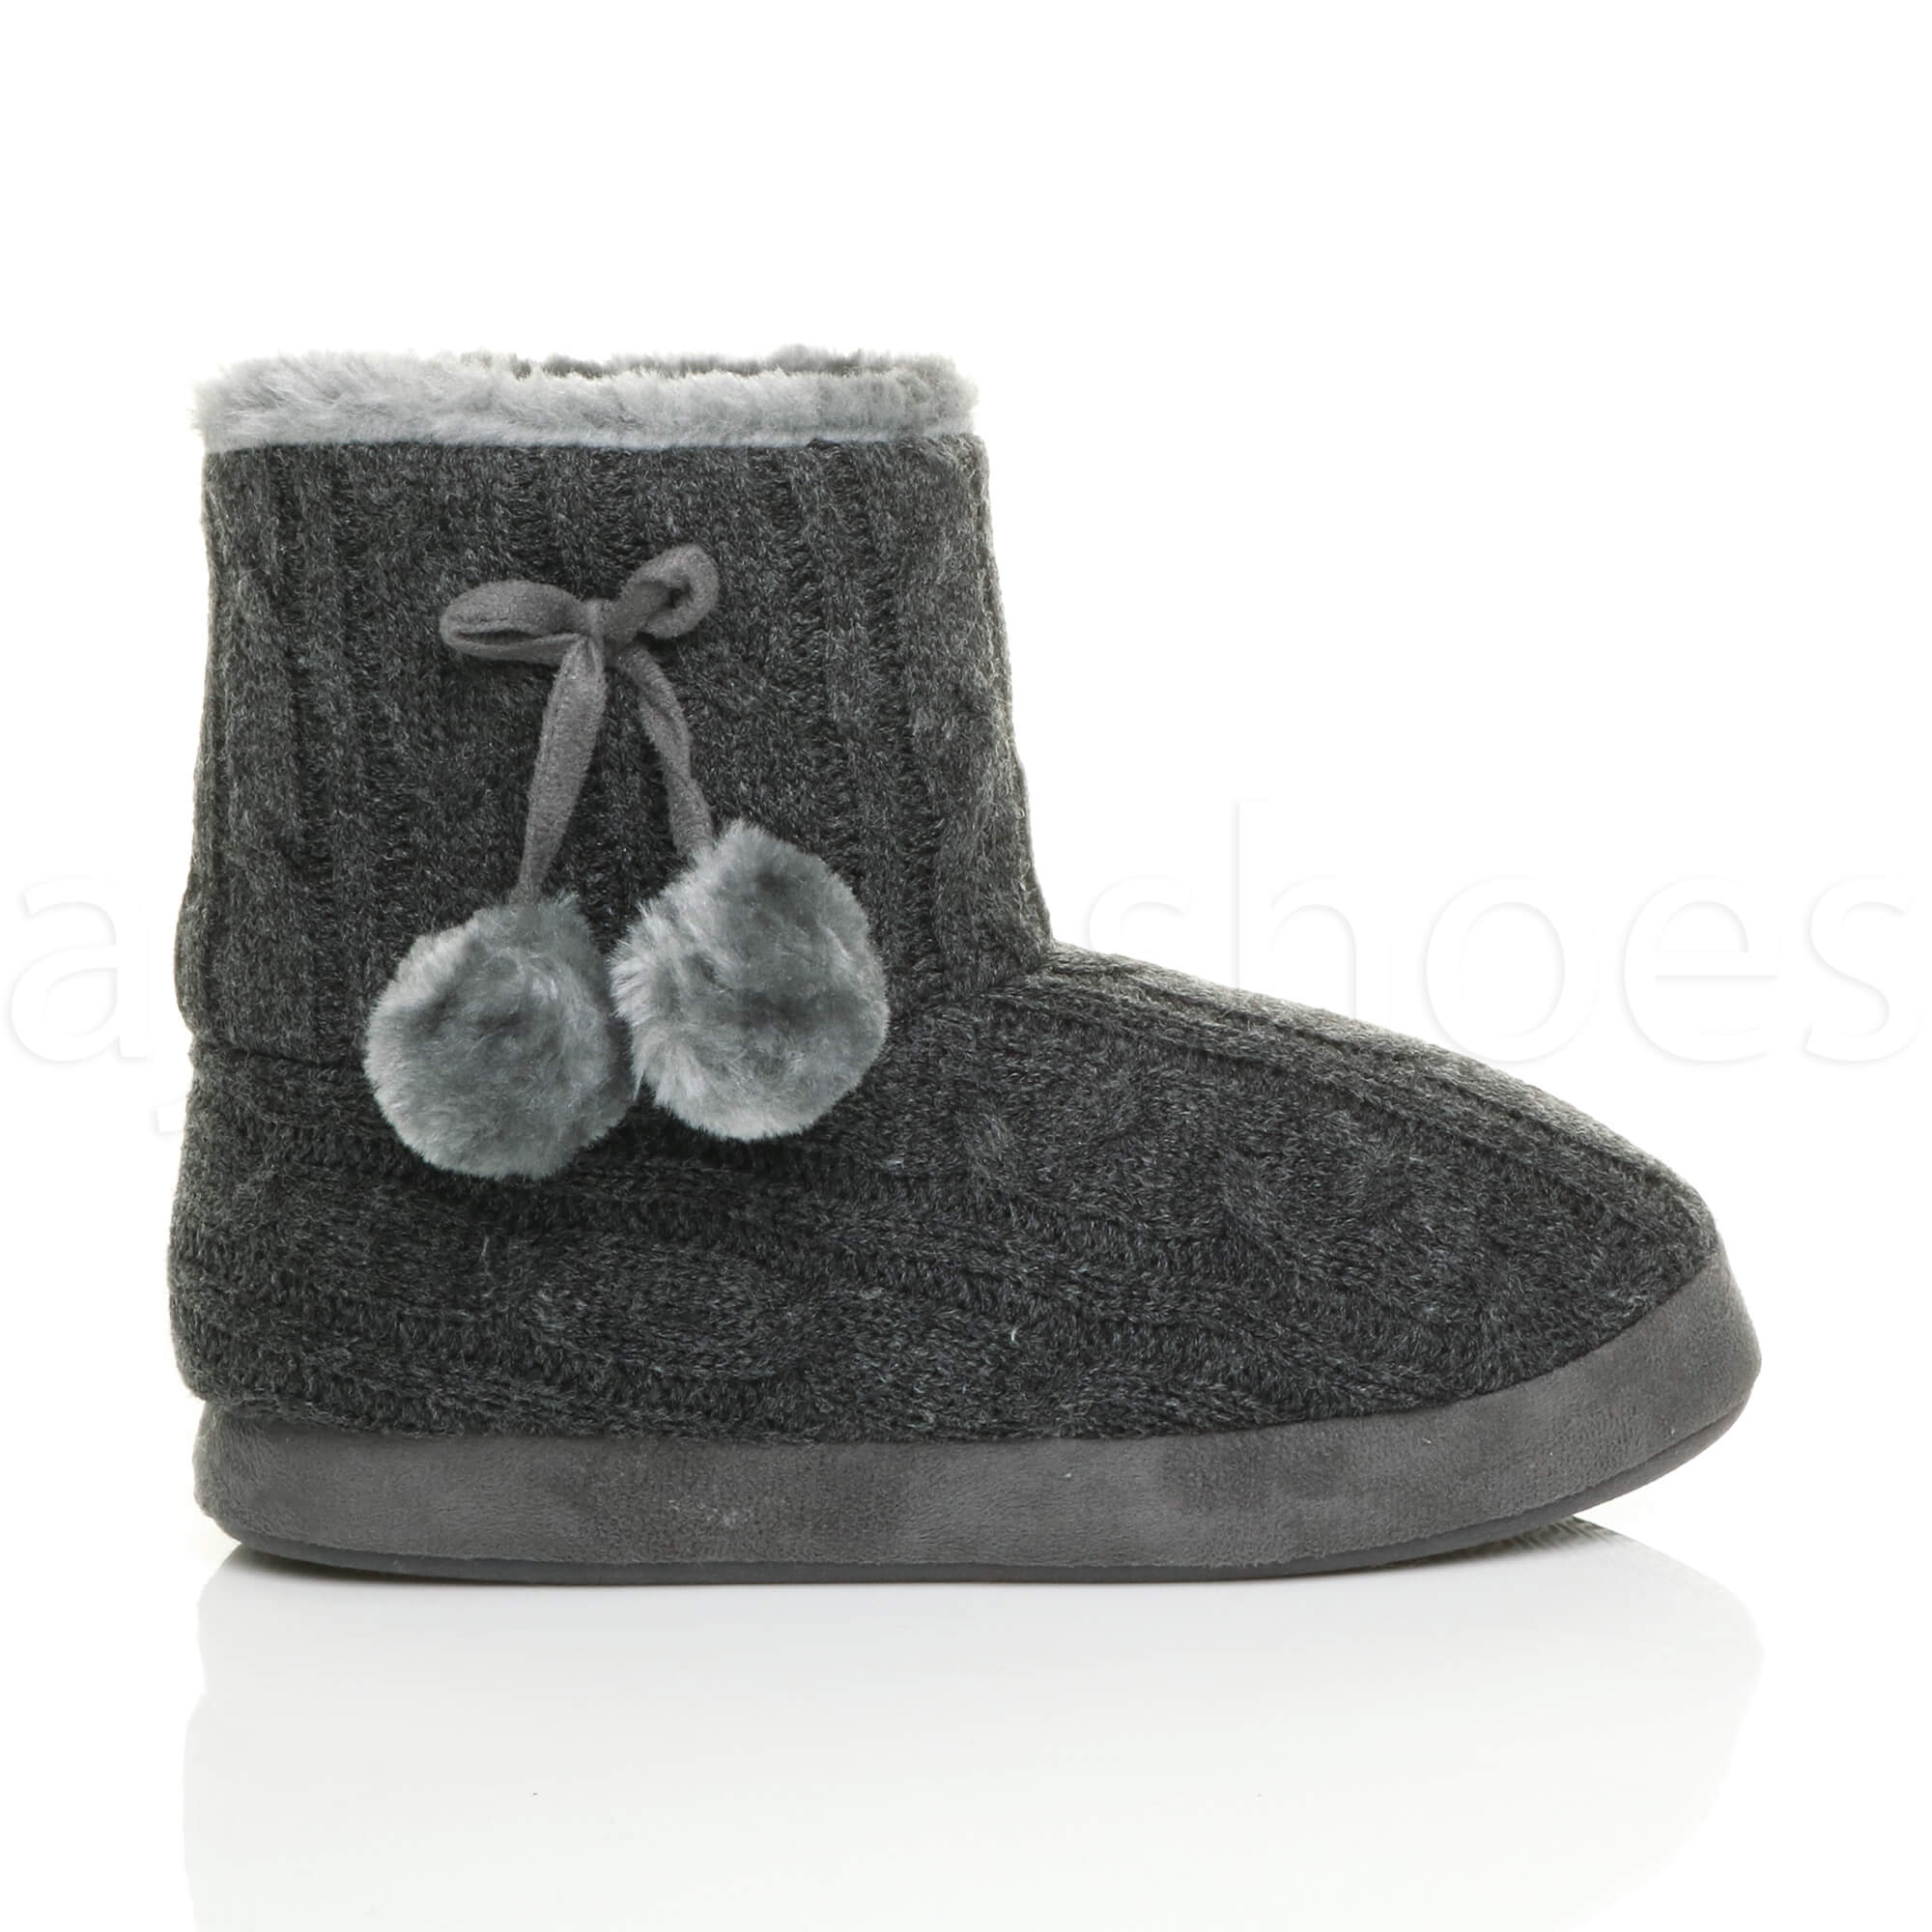 WOMENS-LADIES-WINTER-POM-POM-FUR-LINED-COMFORT-KNITTED-ANKLE-SLIPPER-BOOTS-SIZE